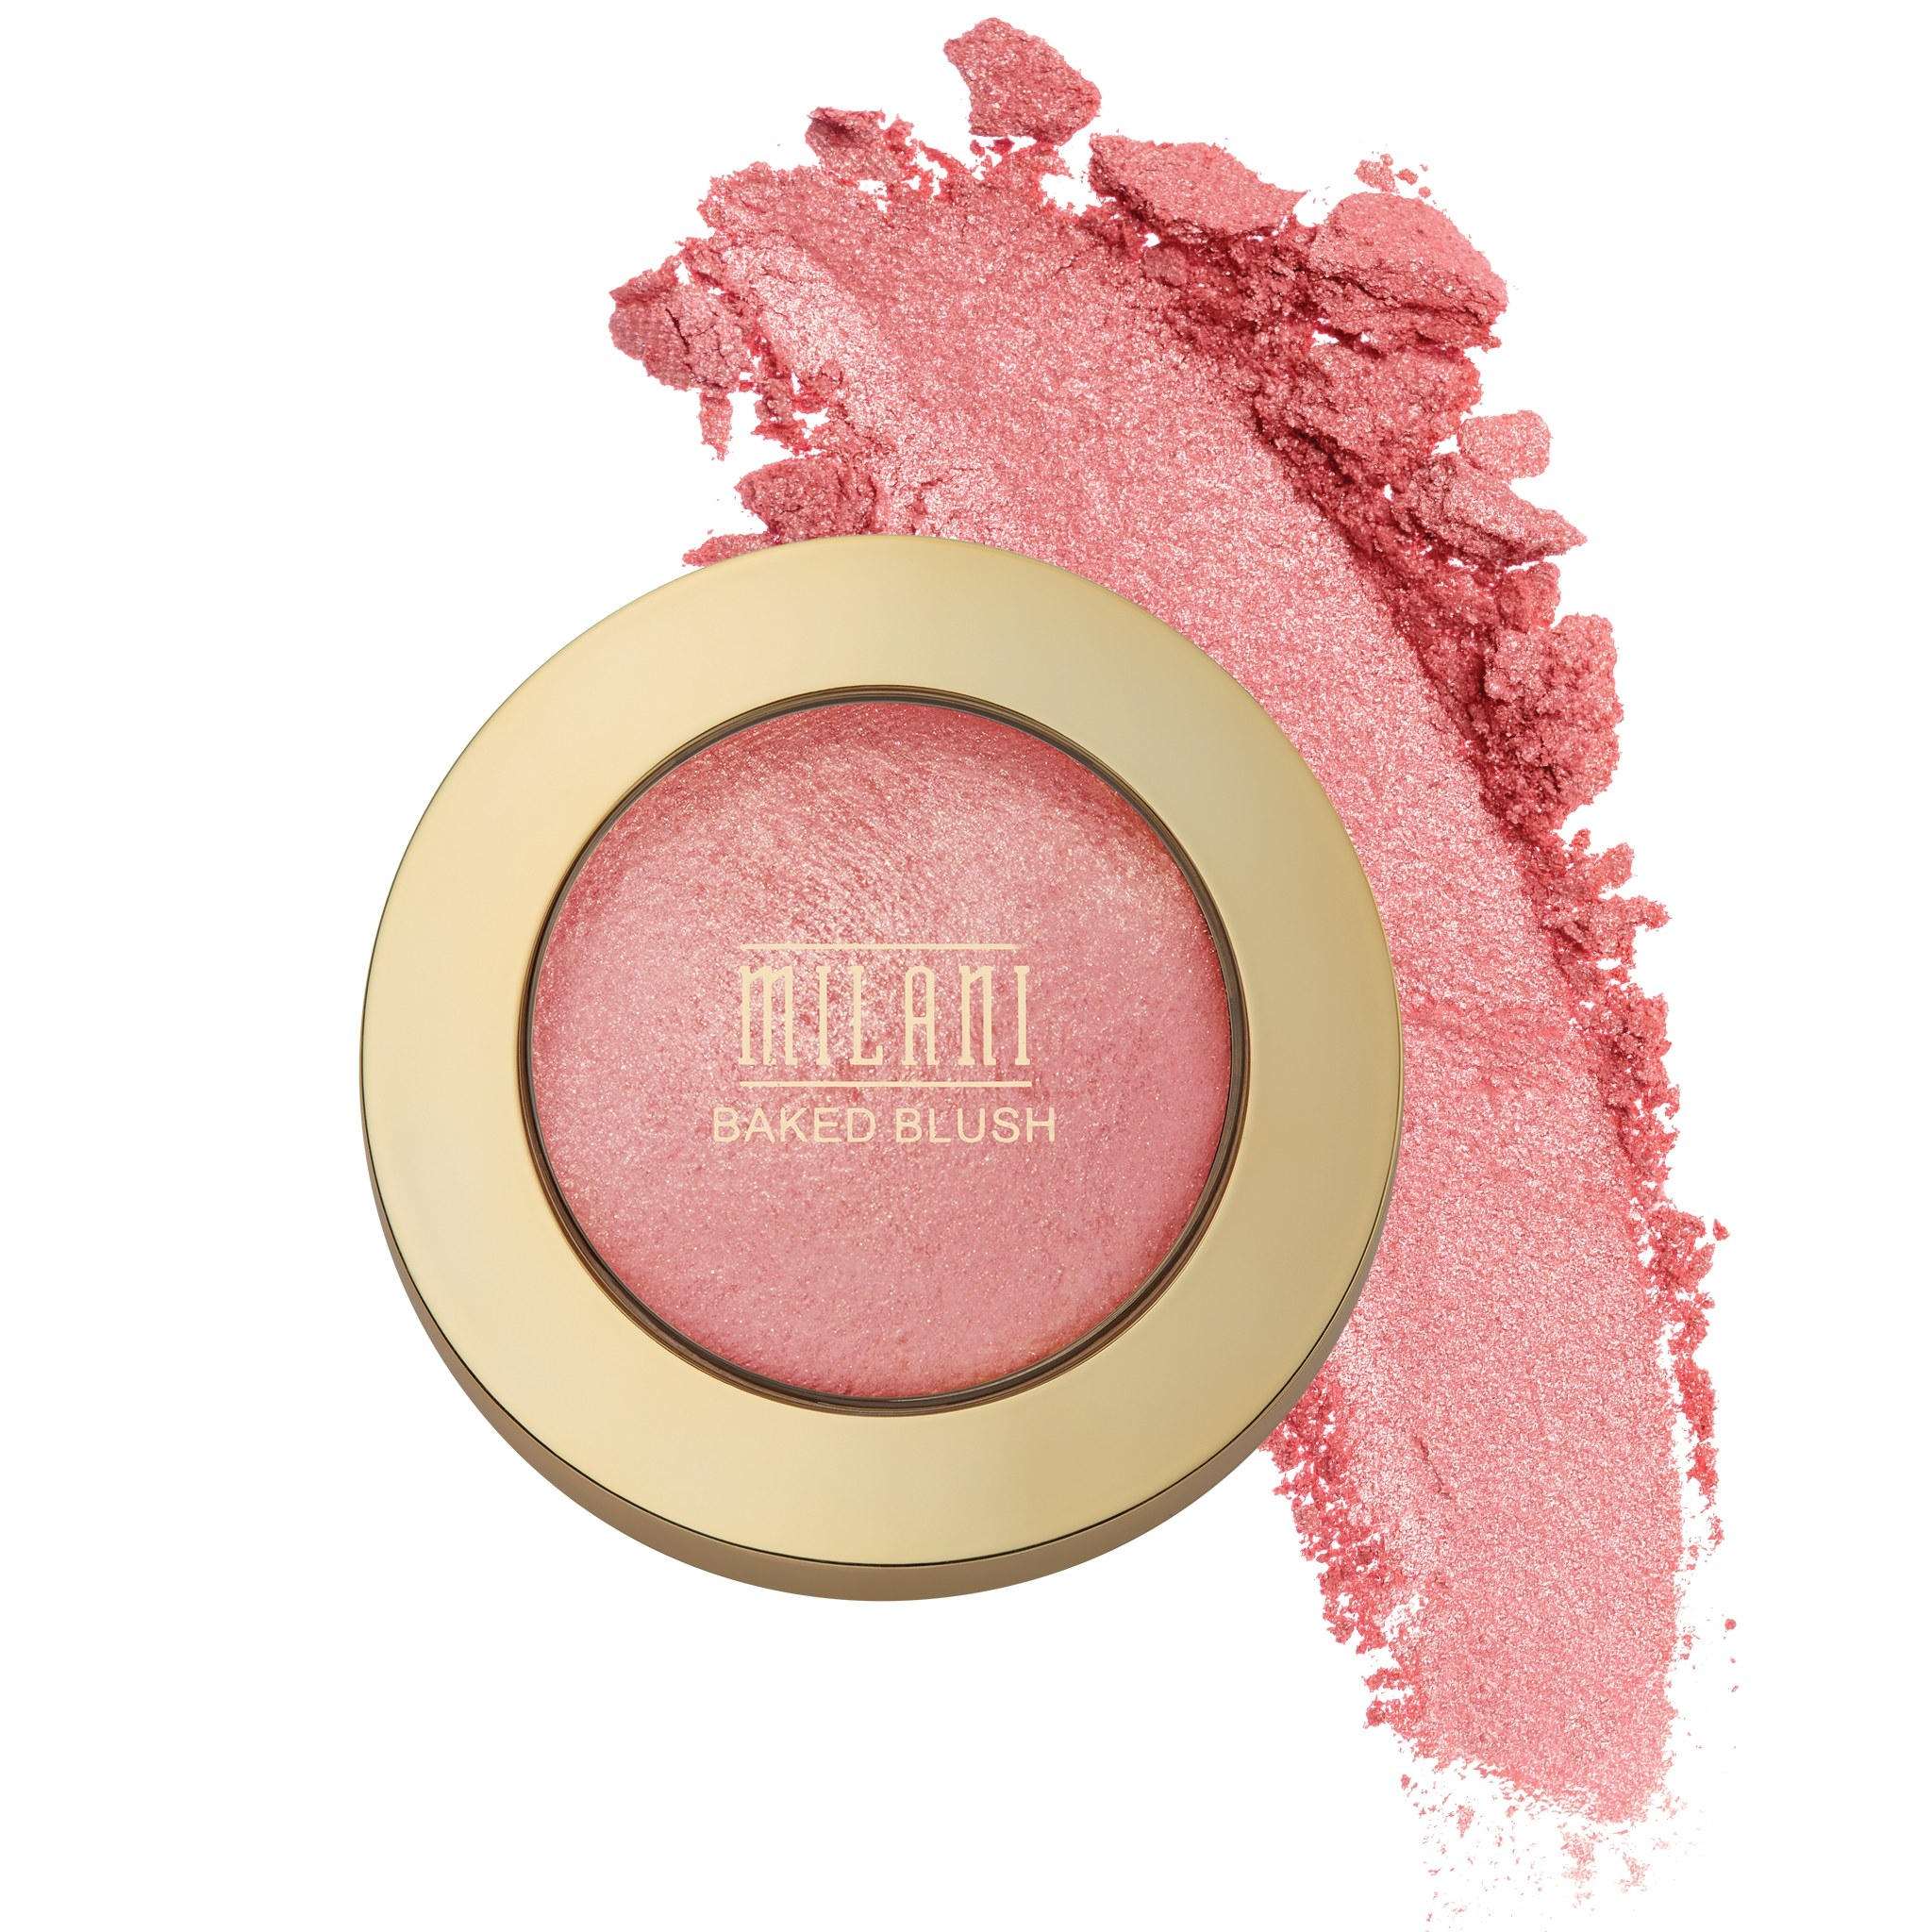 A pink blush compact with a color swatch